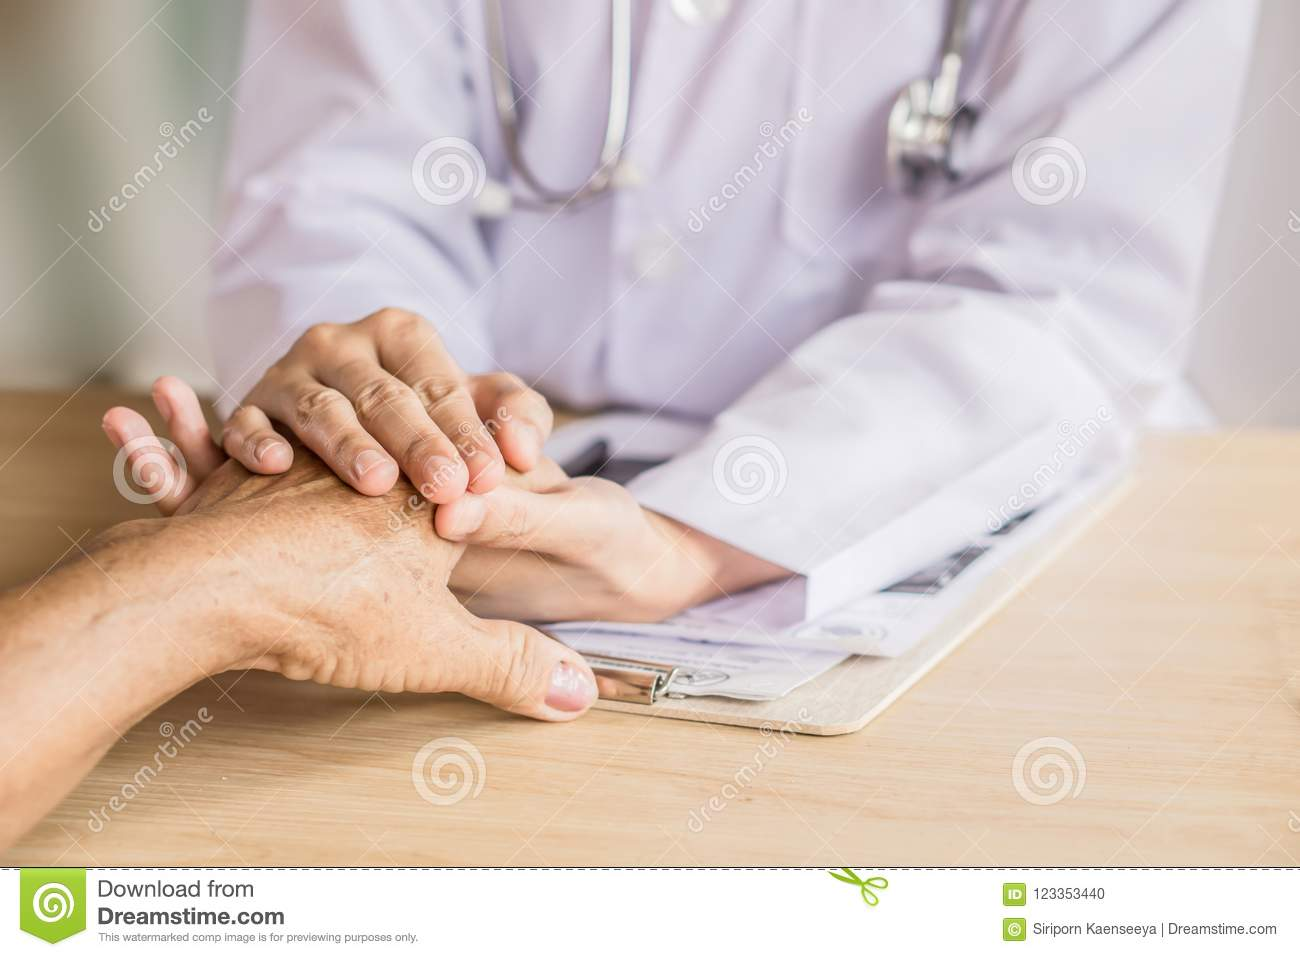 Doctor holding hand and comforting old patient in a hospital